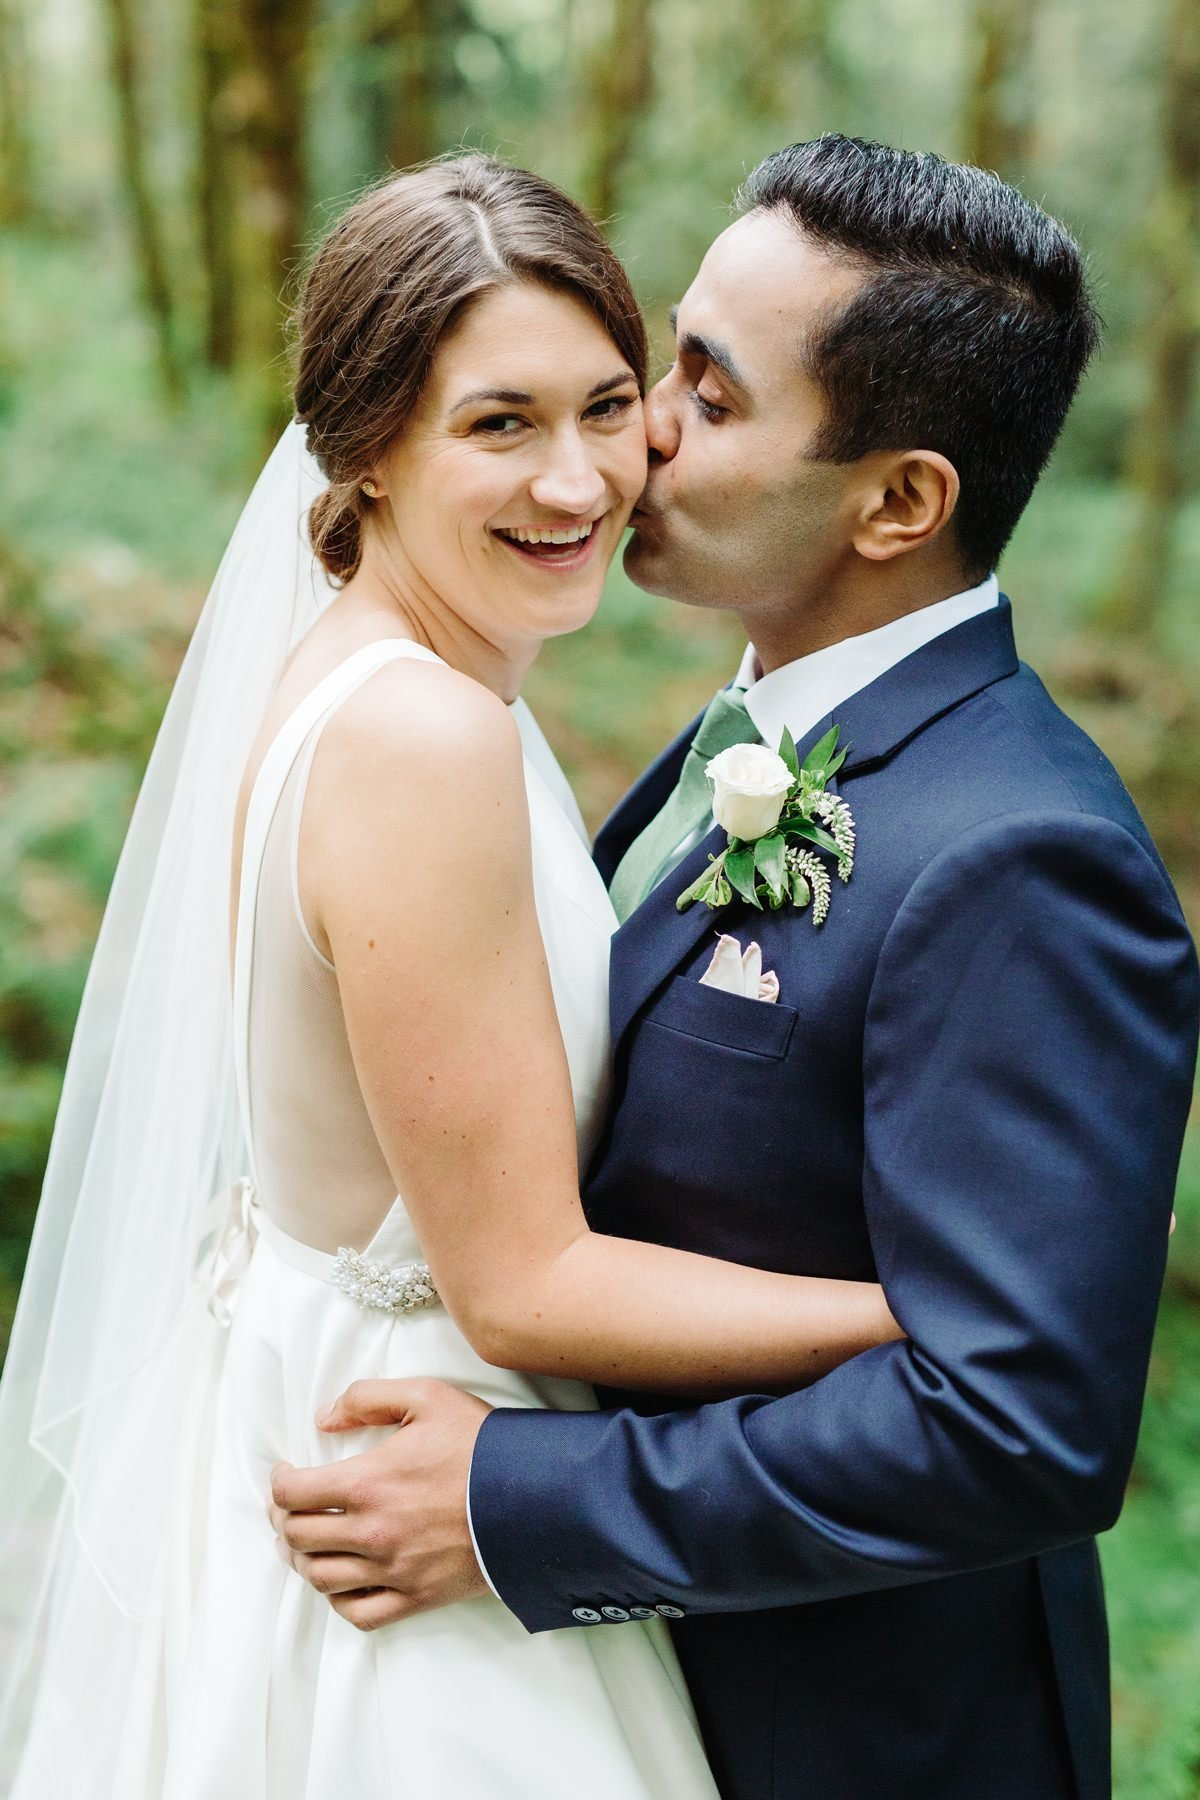 islandwood-bainbridge-island-wedding-photographer-seattle-cameron-zegers-0193